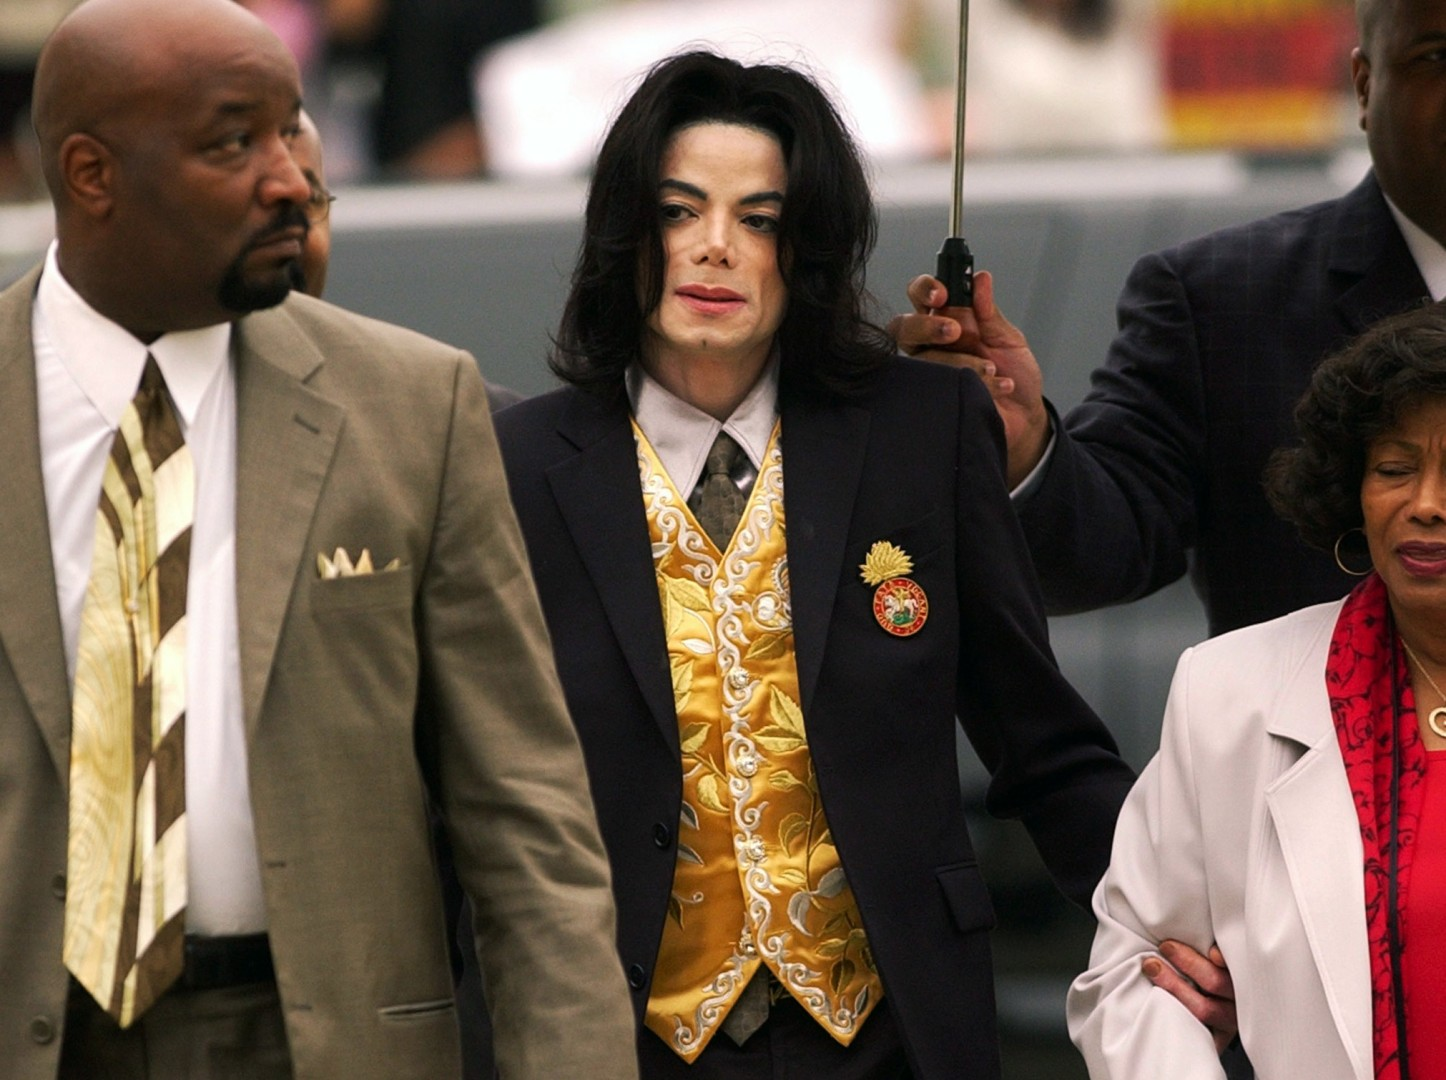 caa668b8 'This public lynching': Michael Jackson family condemns new film about  accusers   South China Morning Post